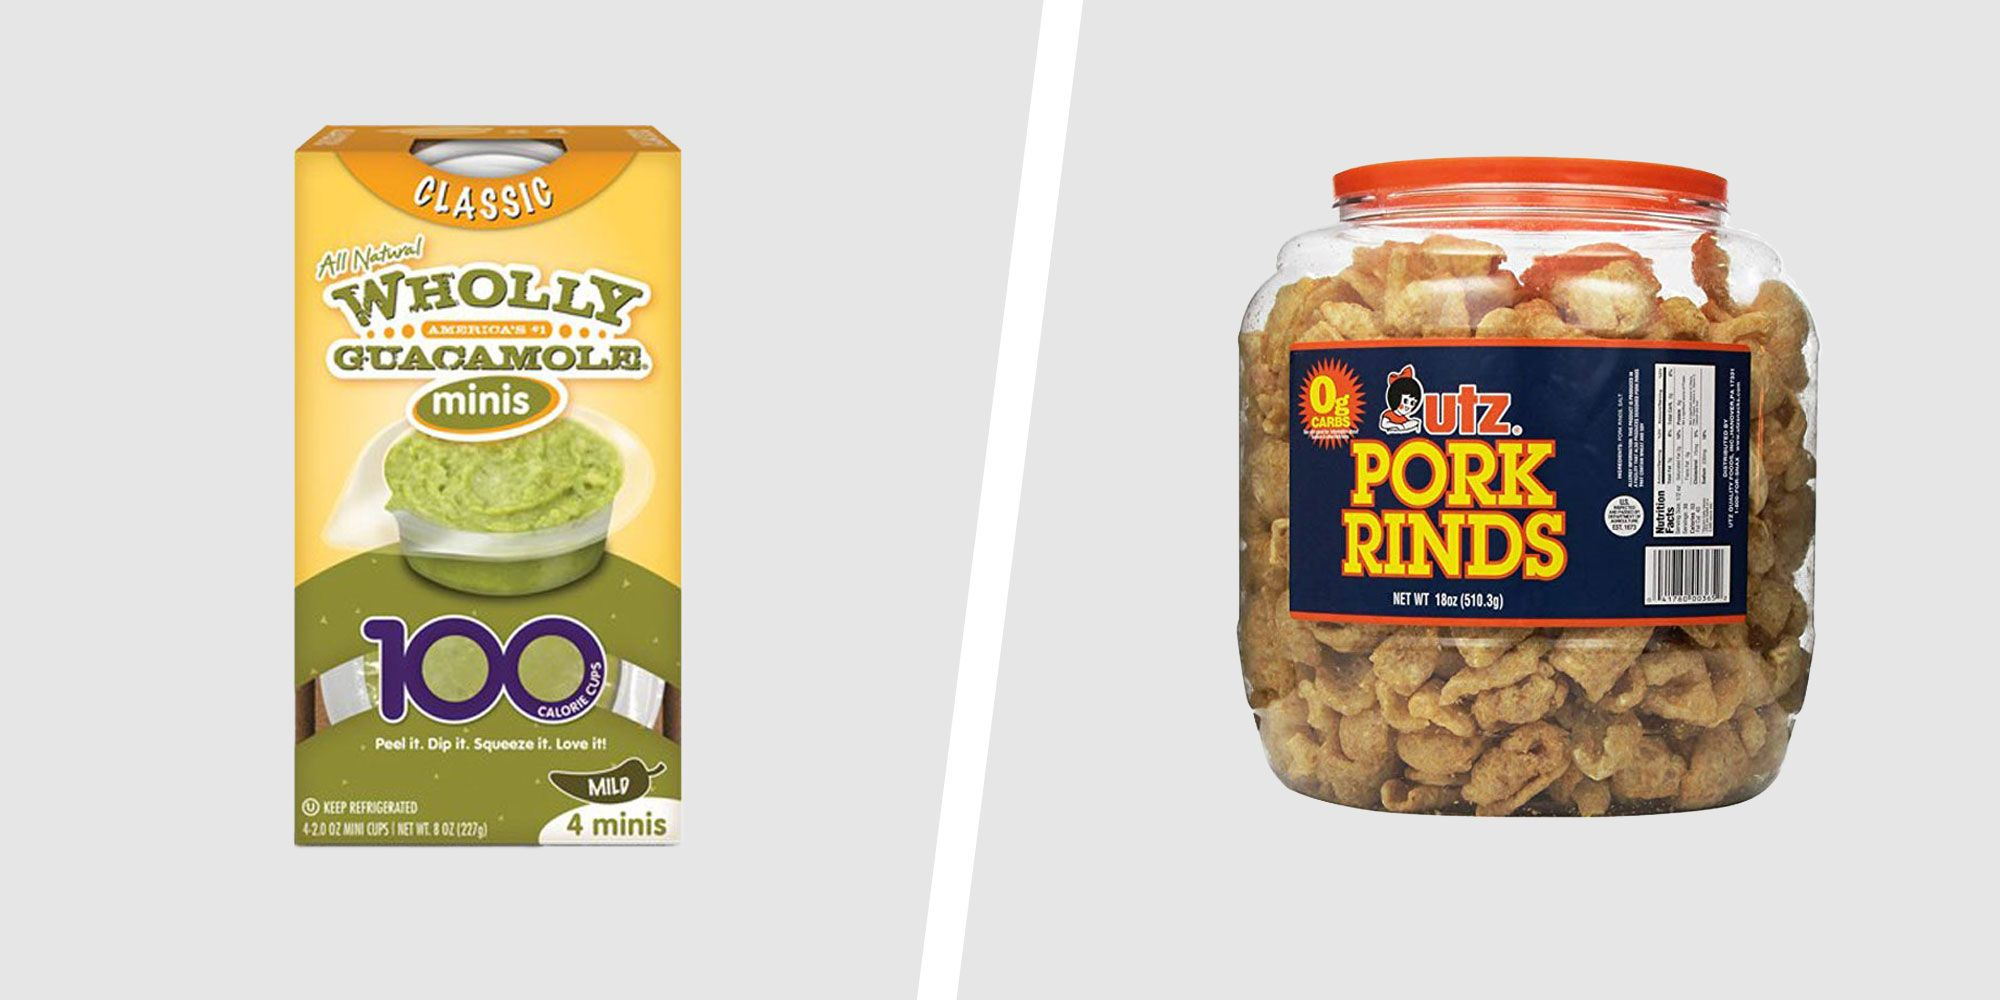 12 Perfect On-the-Go Keto Snacks to Add to Your Grocery List